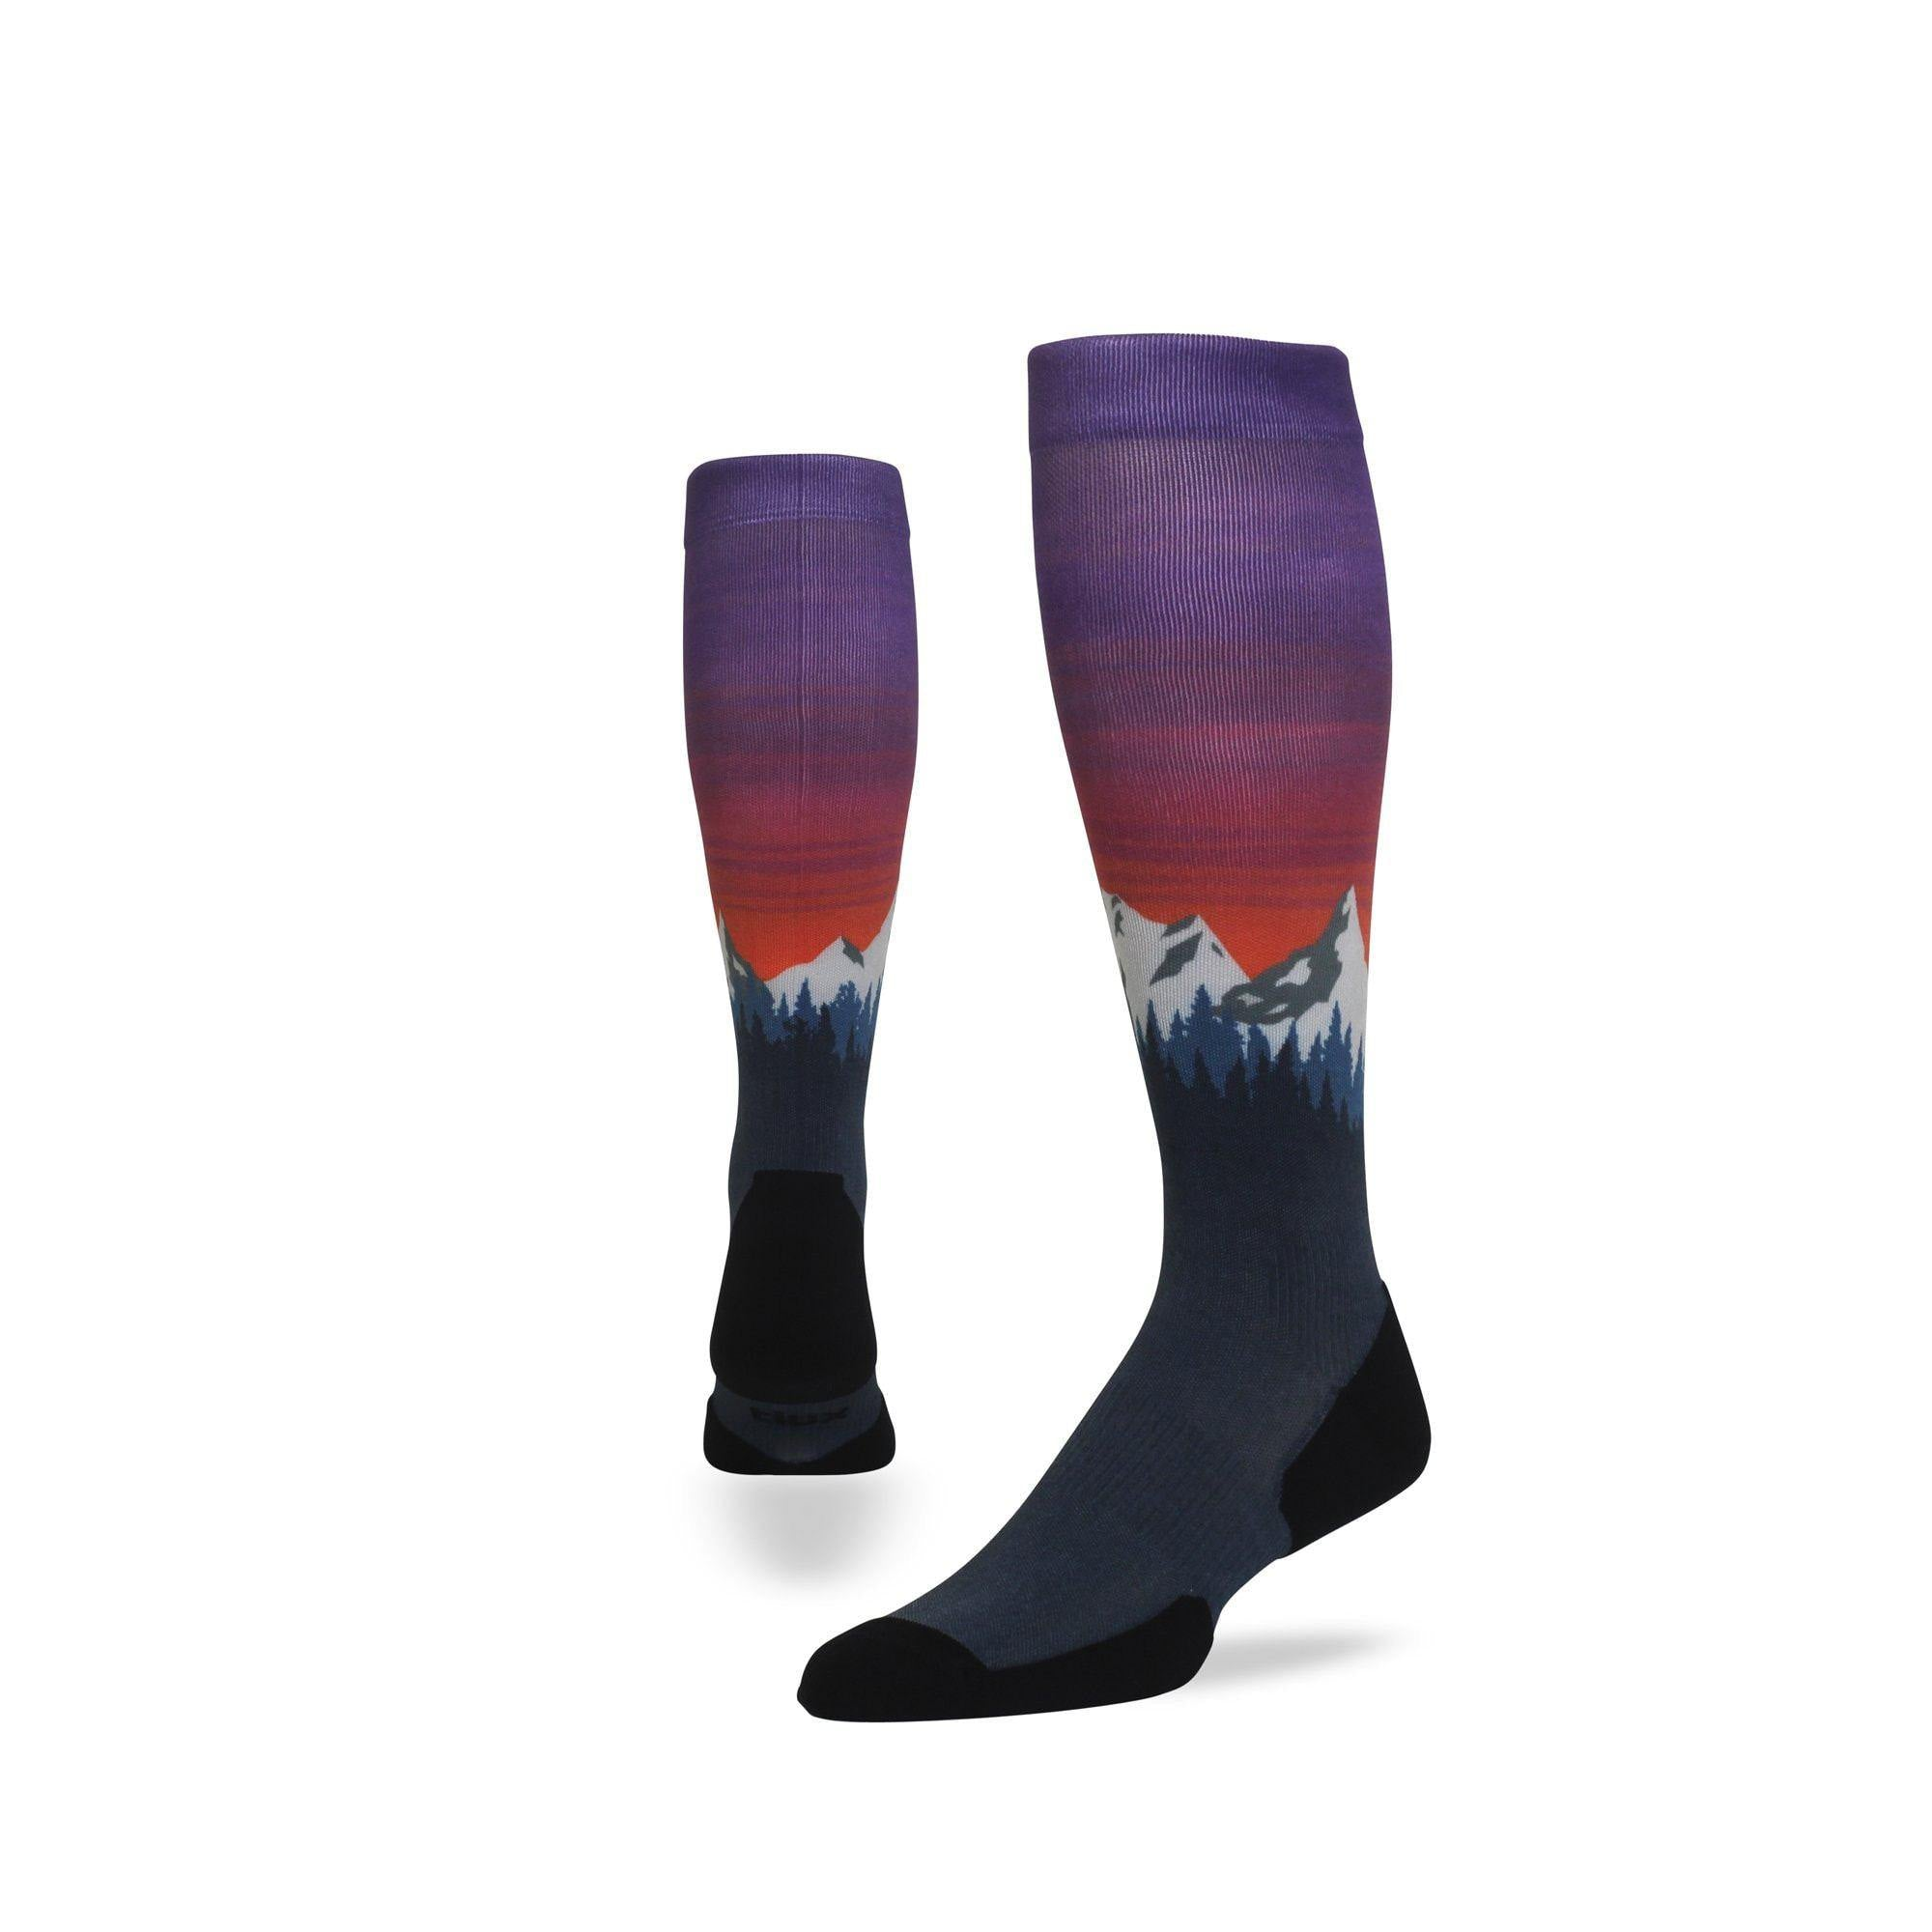 Horizon Run OTC - Graduated Compression Socks